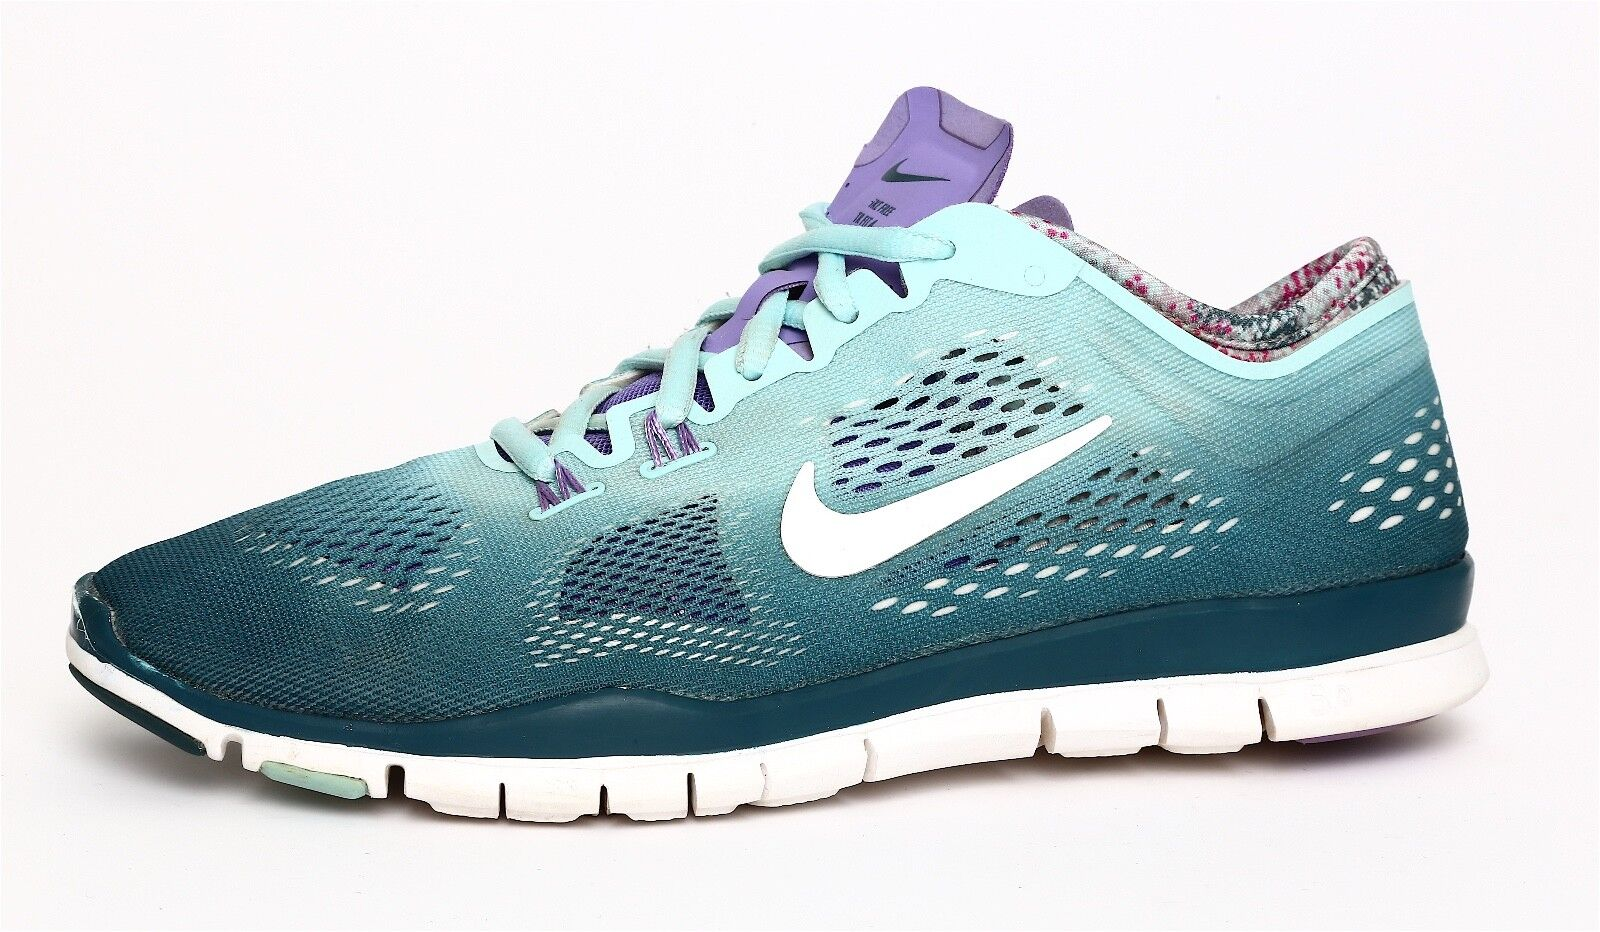 Nike Free 5.0 Tr Fit  4 Women's Teal Training Sneaker Sz 7.5 3104